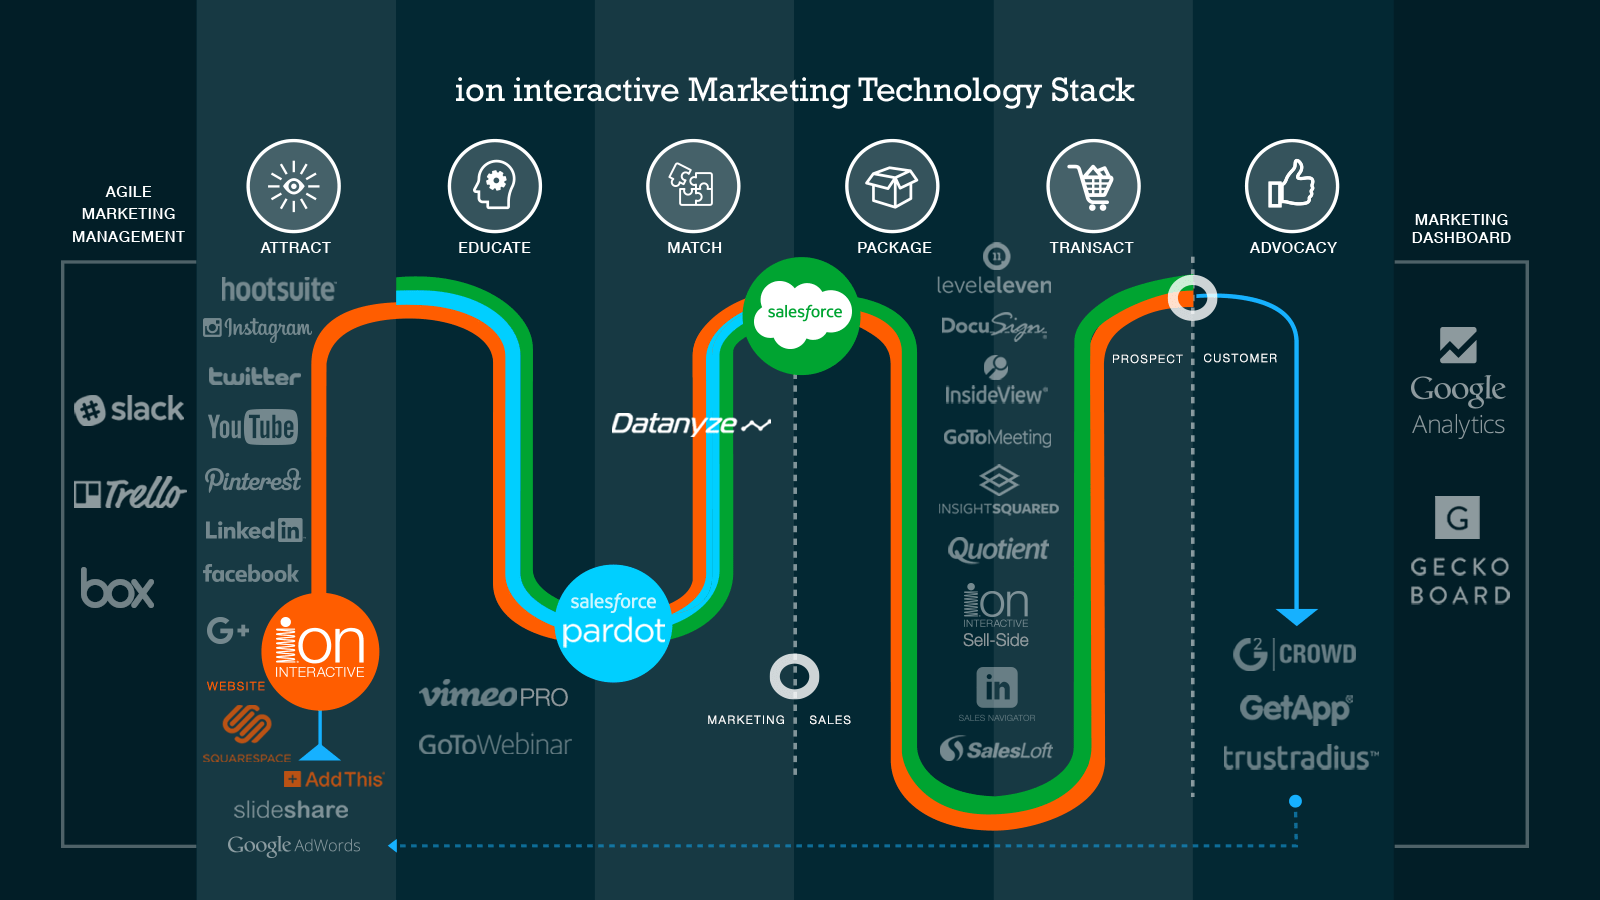 hight resolution of an example of marketing technology stack by ion interactive